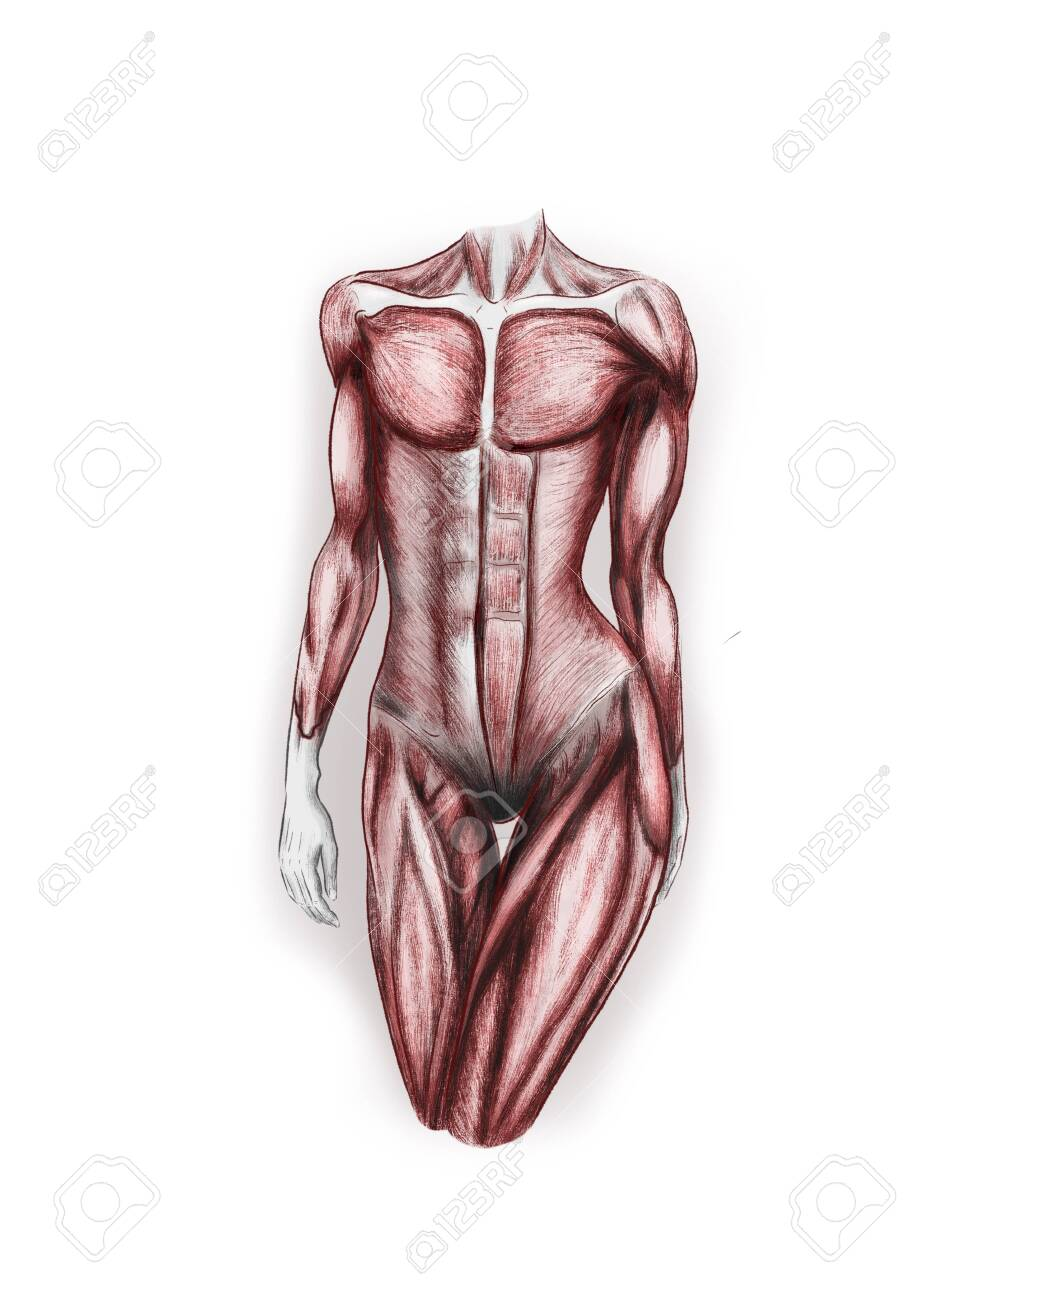 Illustration of female body muscles - 145377708